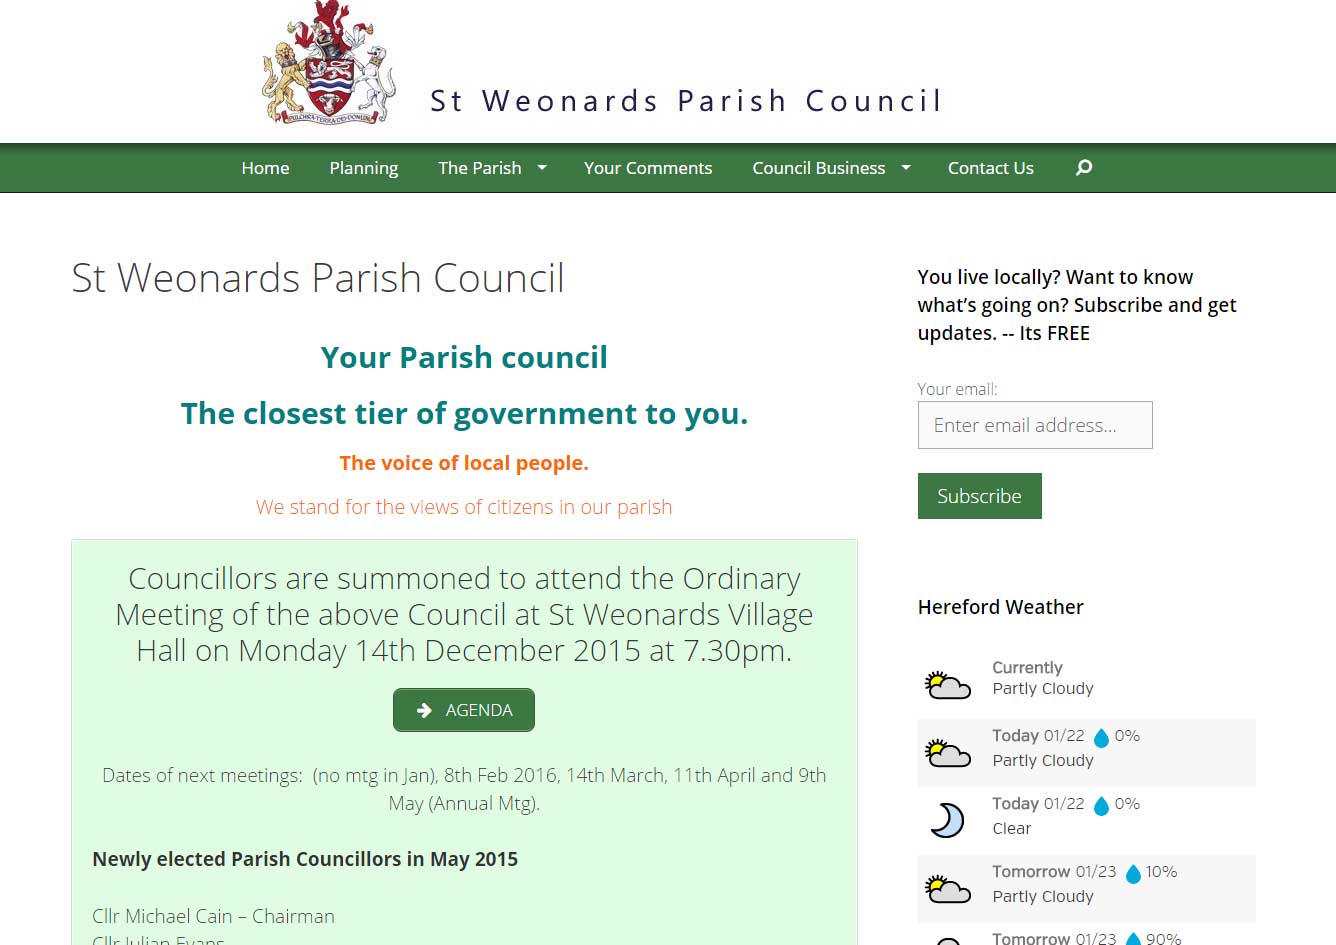 St Weonards Parish Council